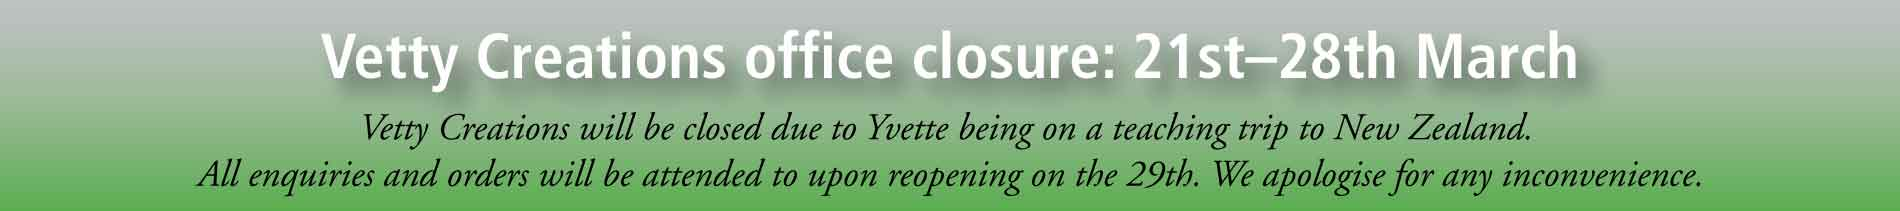 office closure 21-28 March